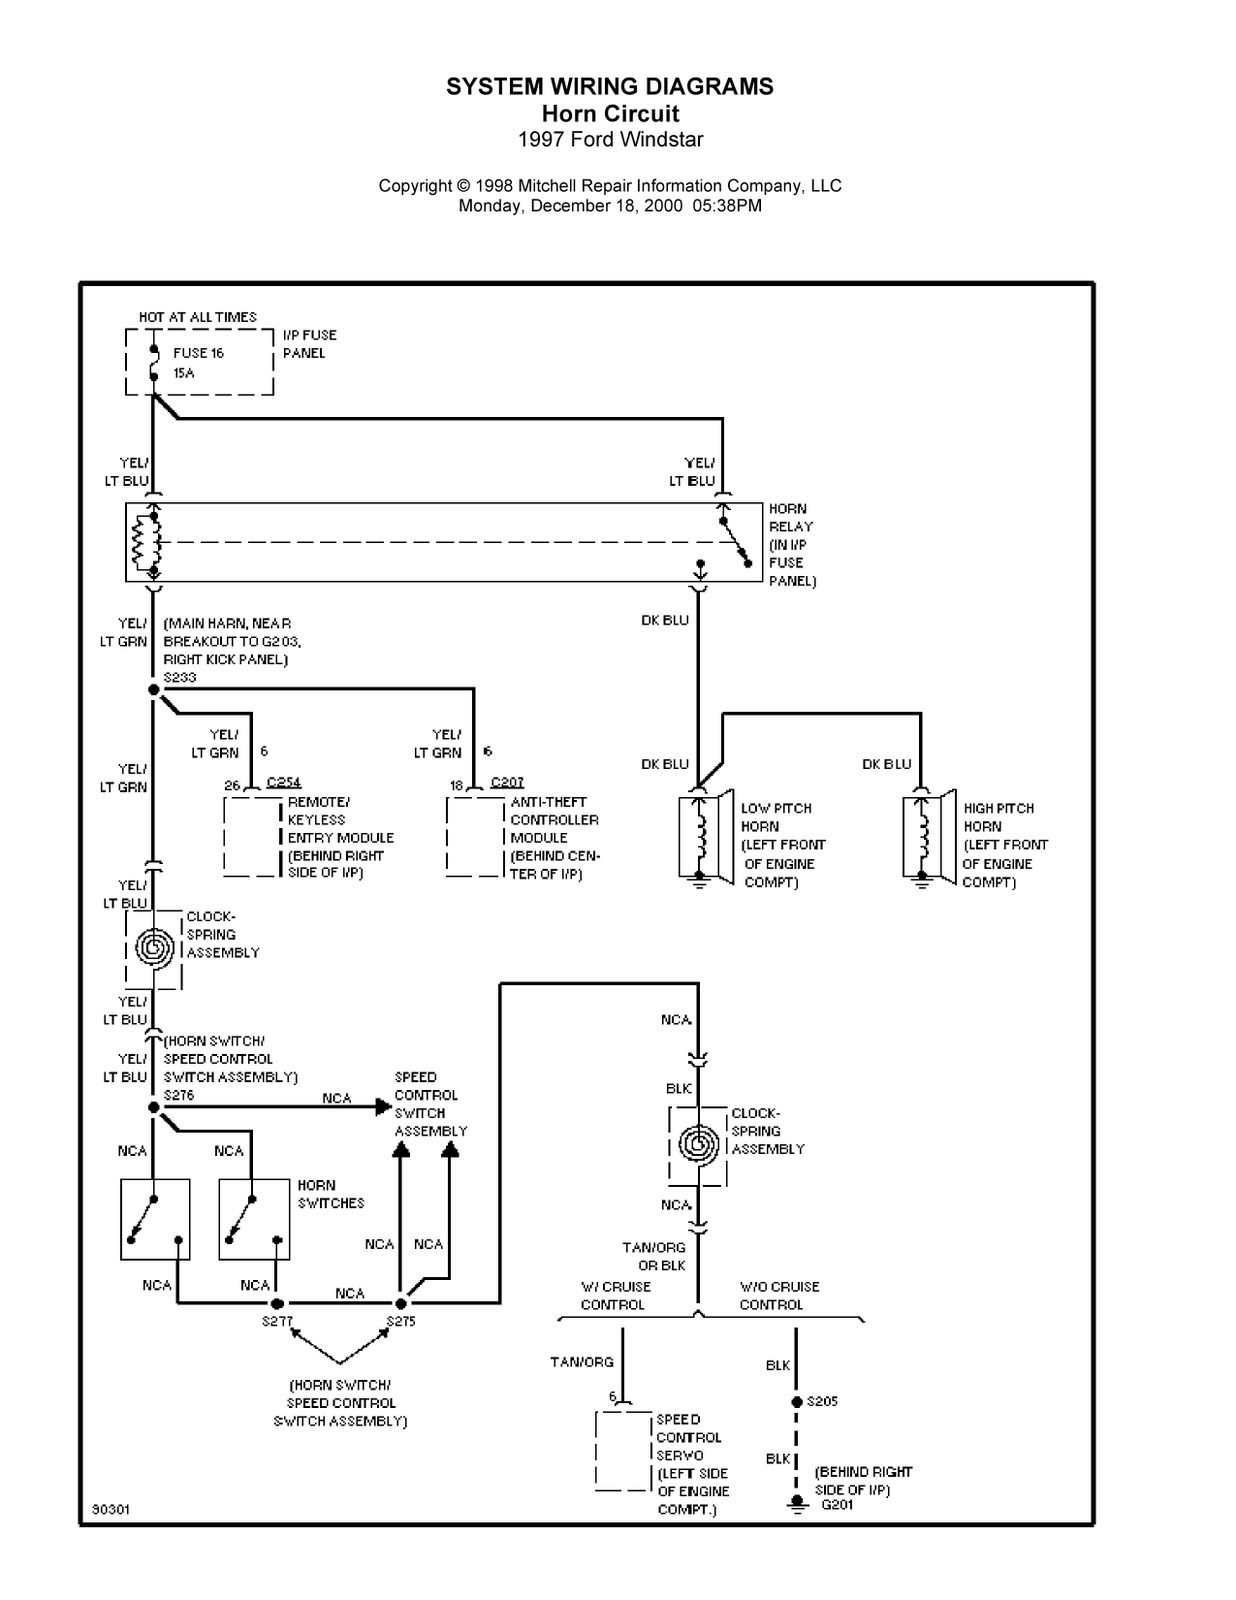 1997 ford windstar complete system wiring diagrams wiring diagrams